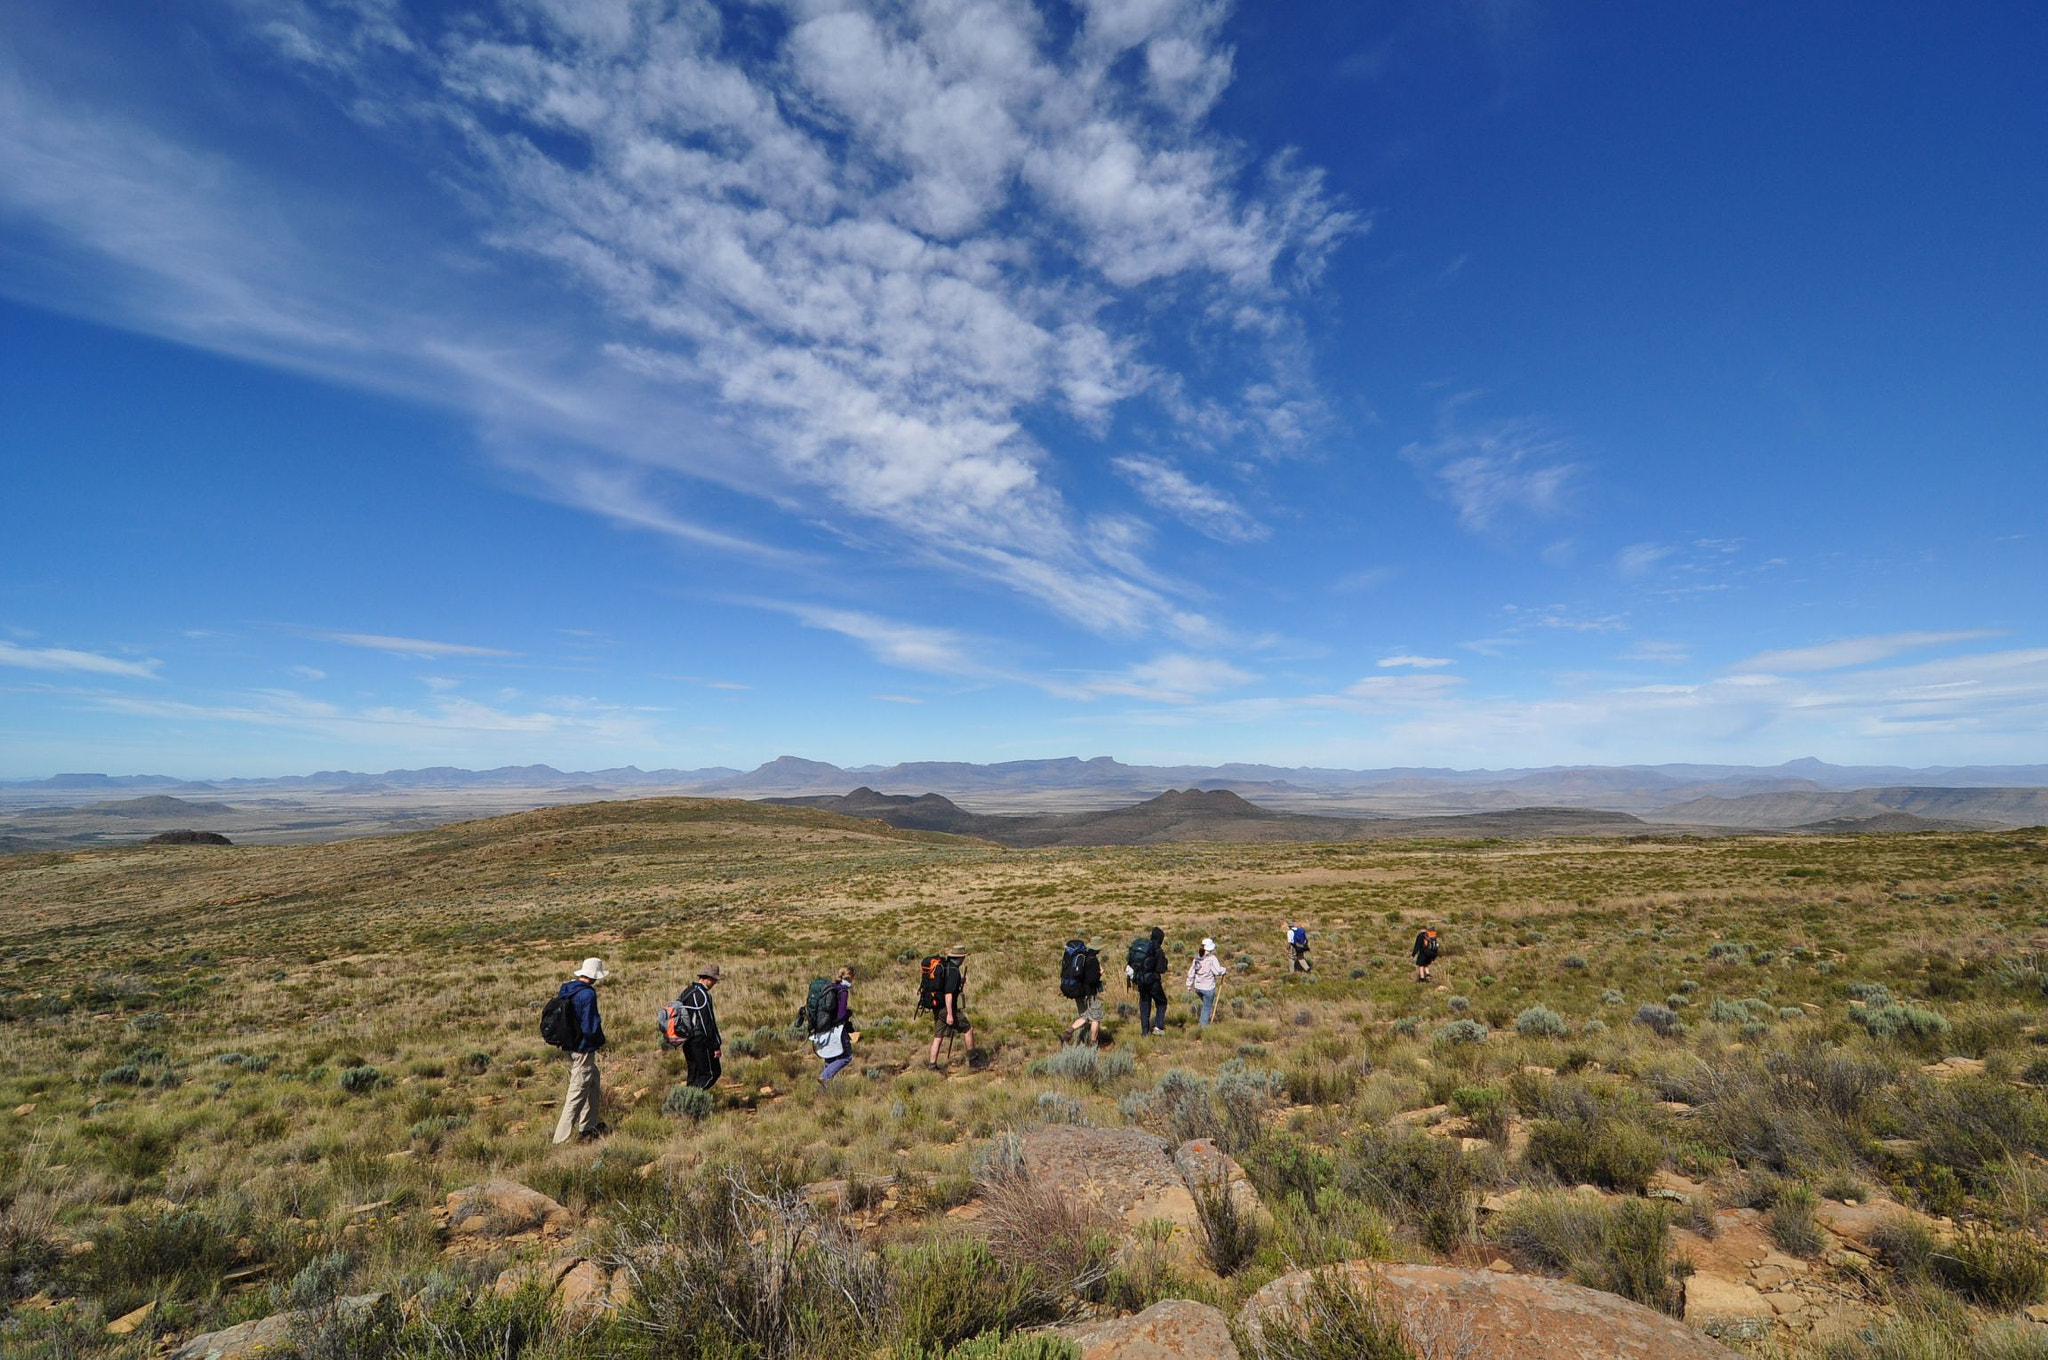 Photograph Karoo hikers by Emile le Roux on 500px